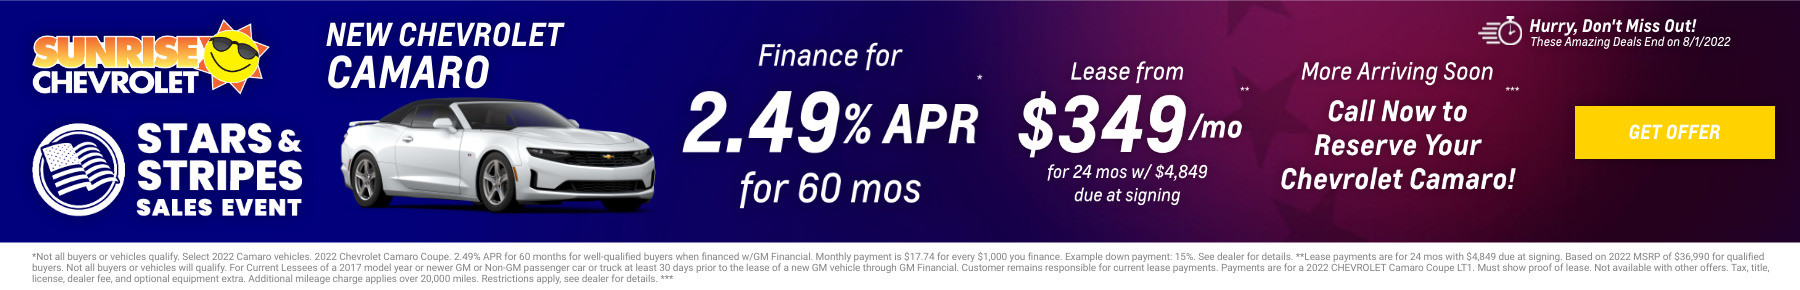 New Chevrolet Camaro Current Deals and Offers in Glendale Heights, IL